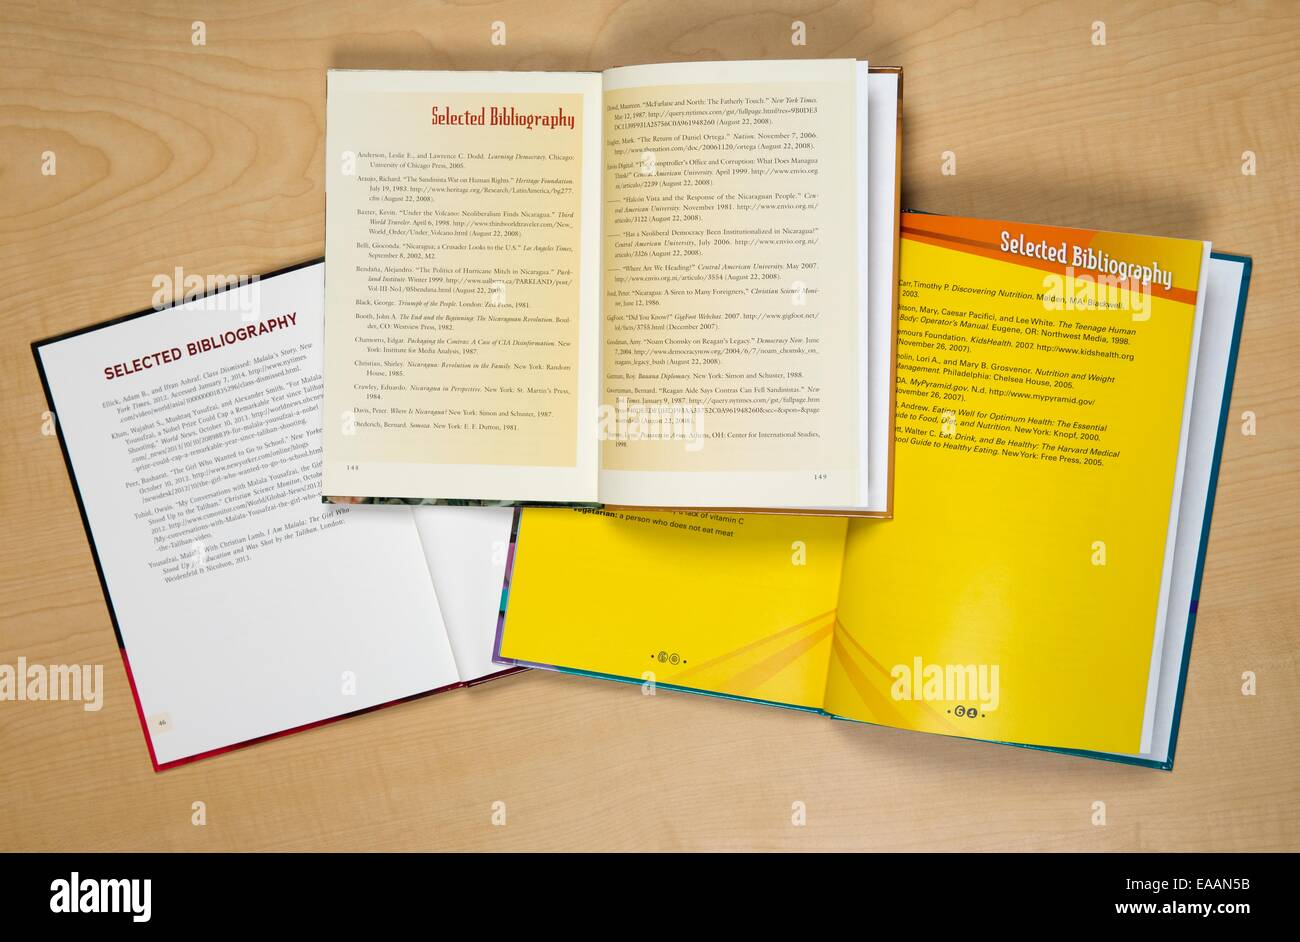 Three Lerner Publishing Group books showing selected bibliographies - Stock Image